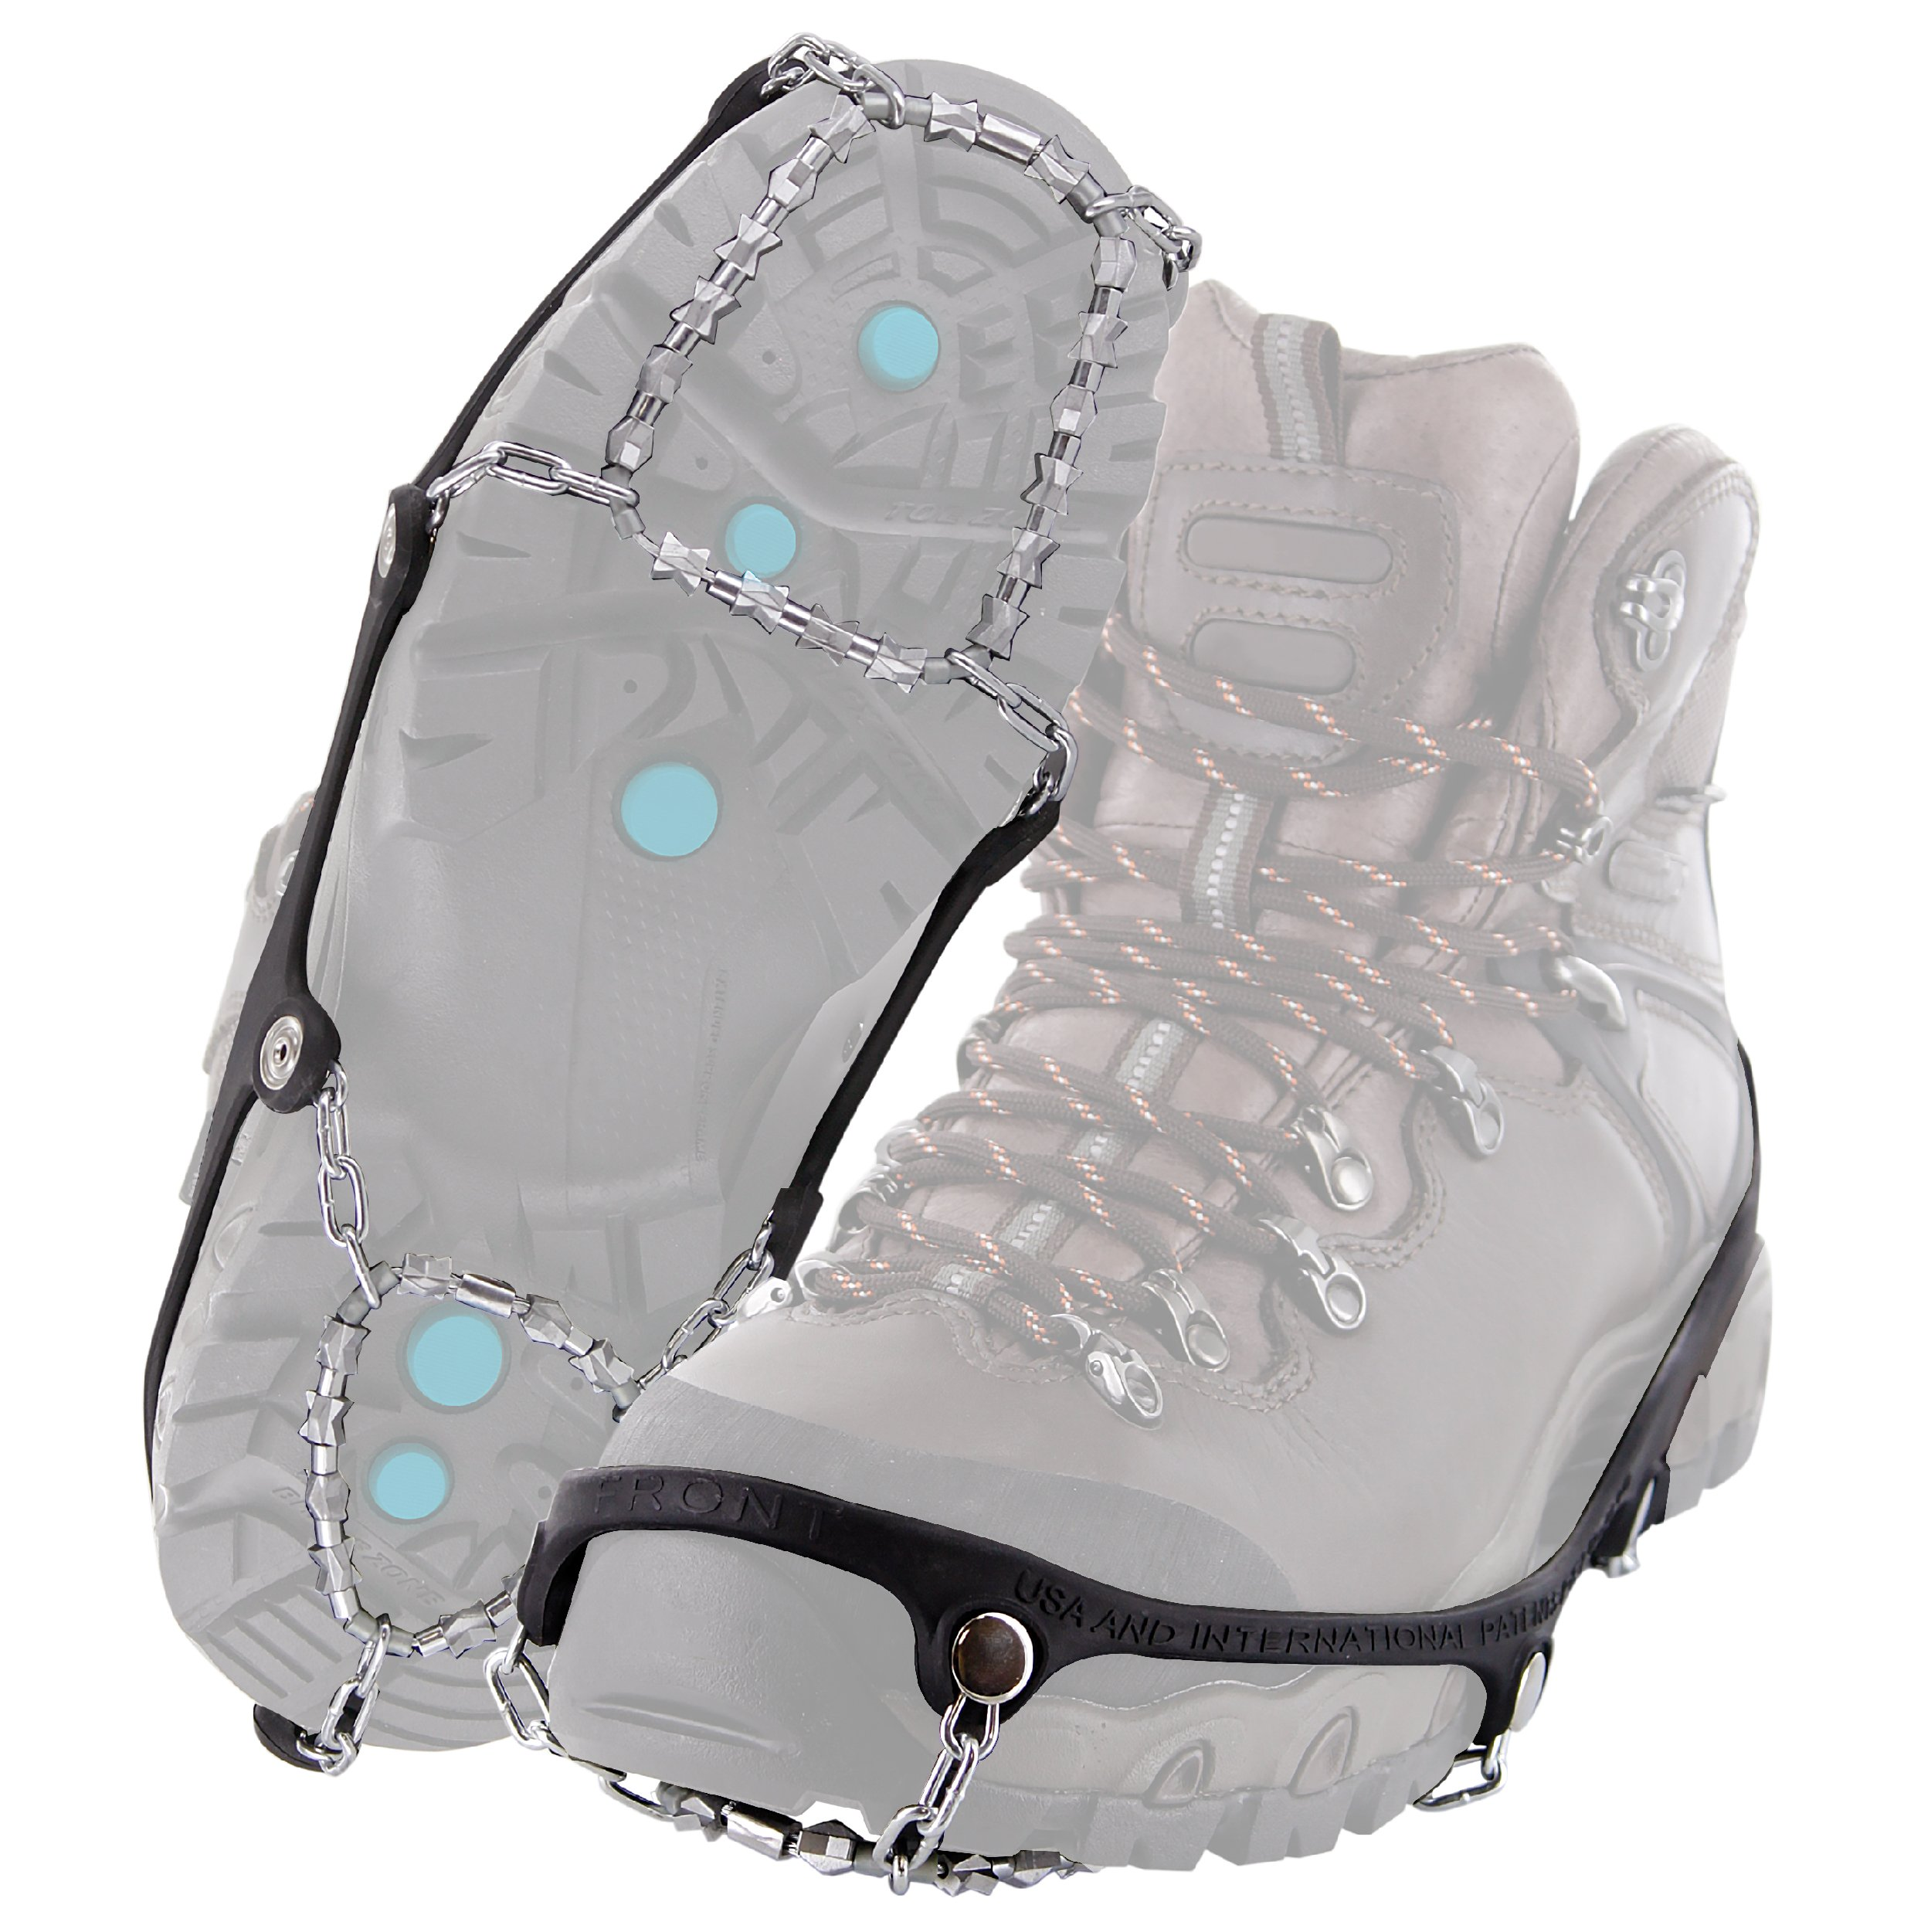 Yaktrax Diamond Grip All-Surface Traction Cleats for Walking on Ice and Snow (1 Pair), Large by Yaktrax